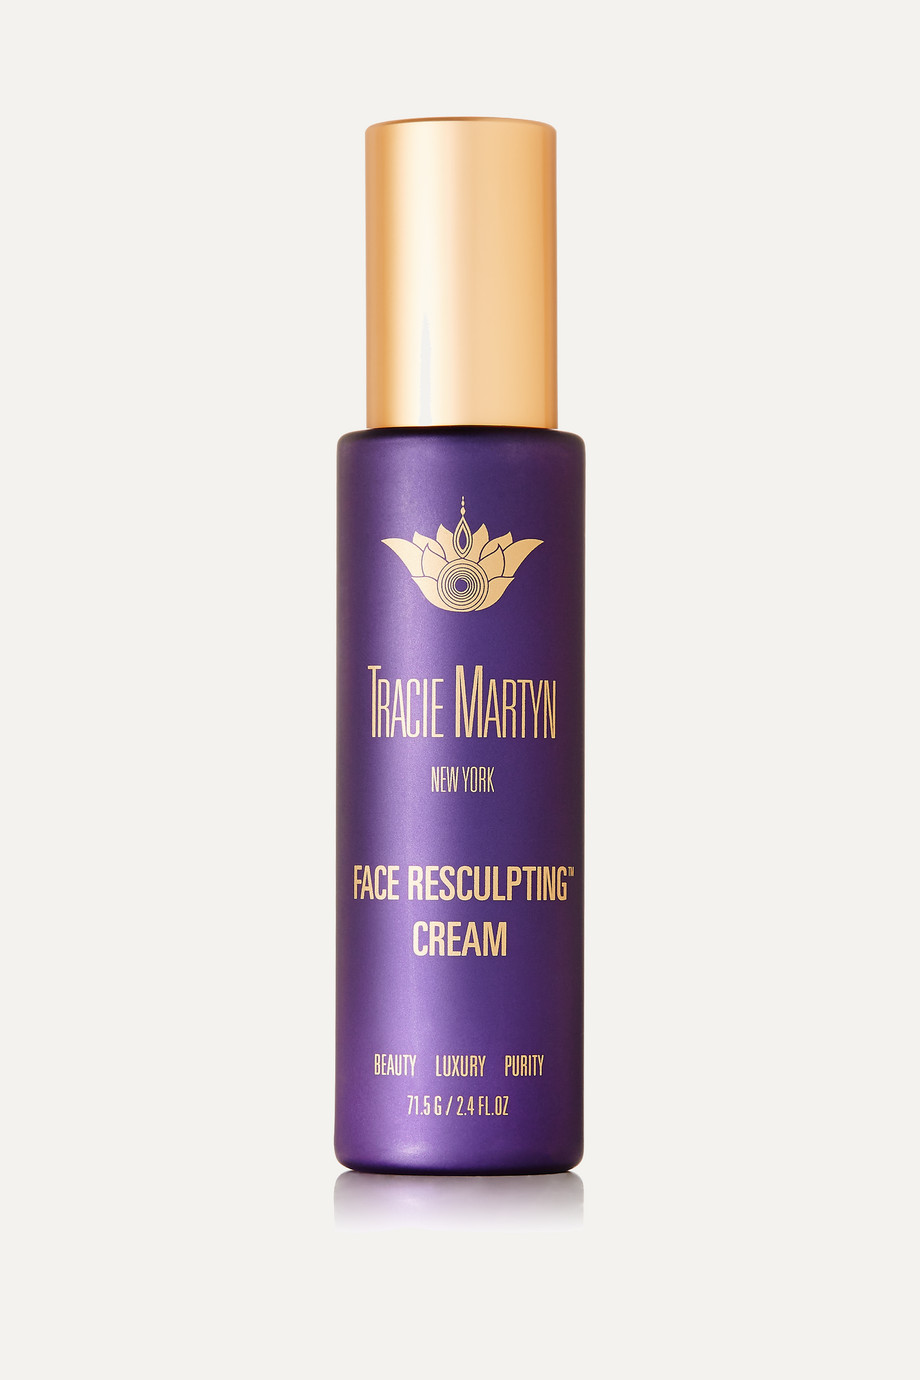 Face and Body Resculpting Cream, 75g, by Tracie Martyn